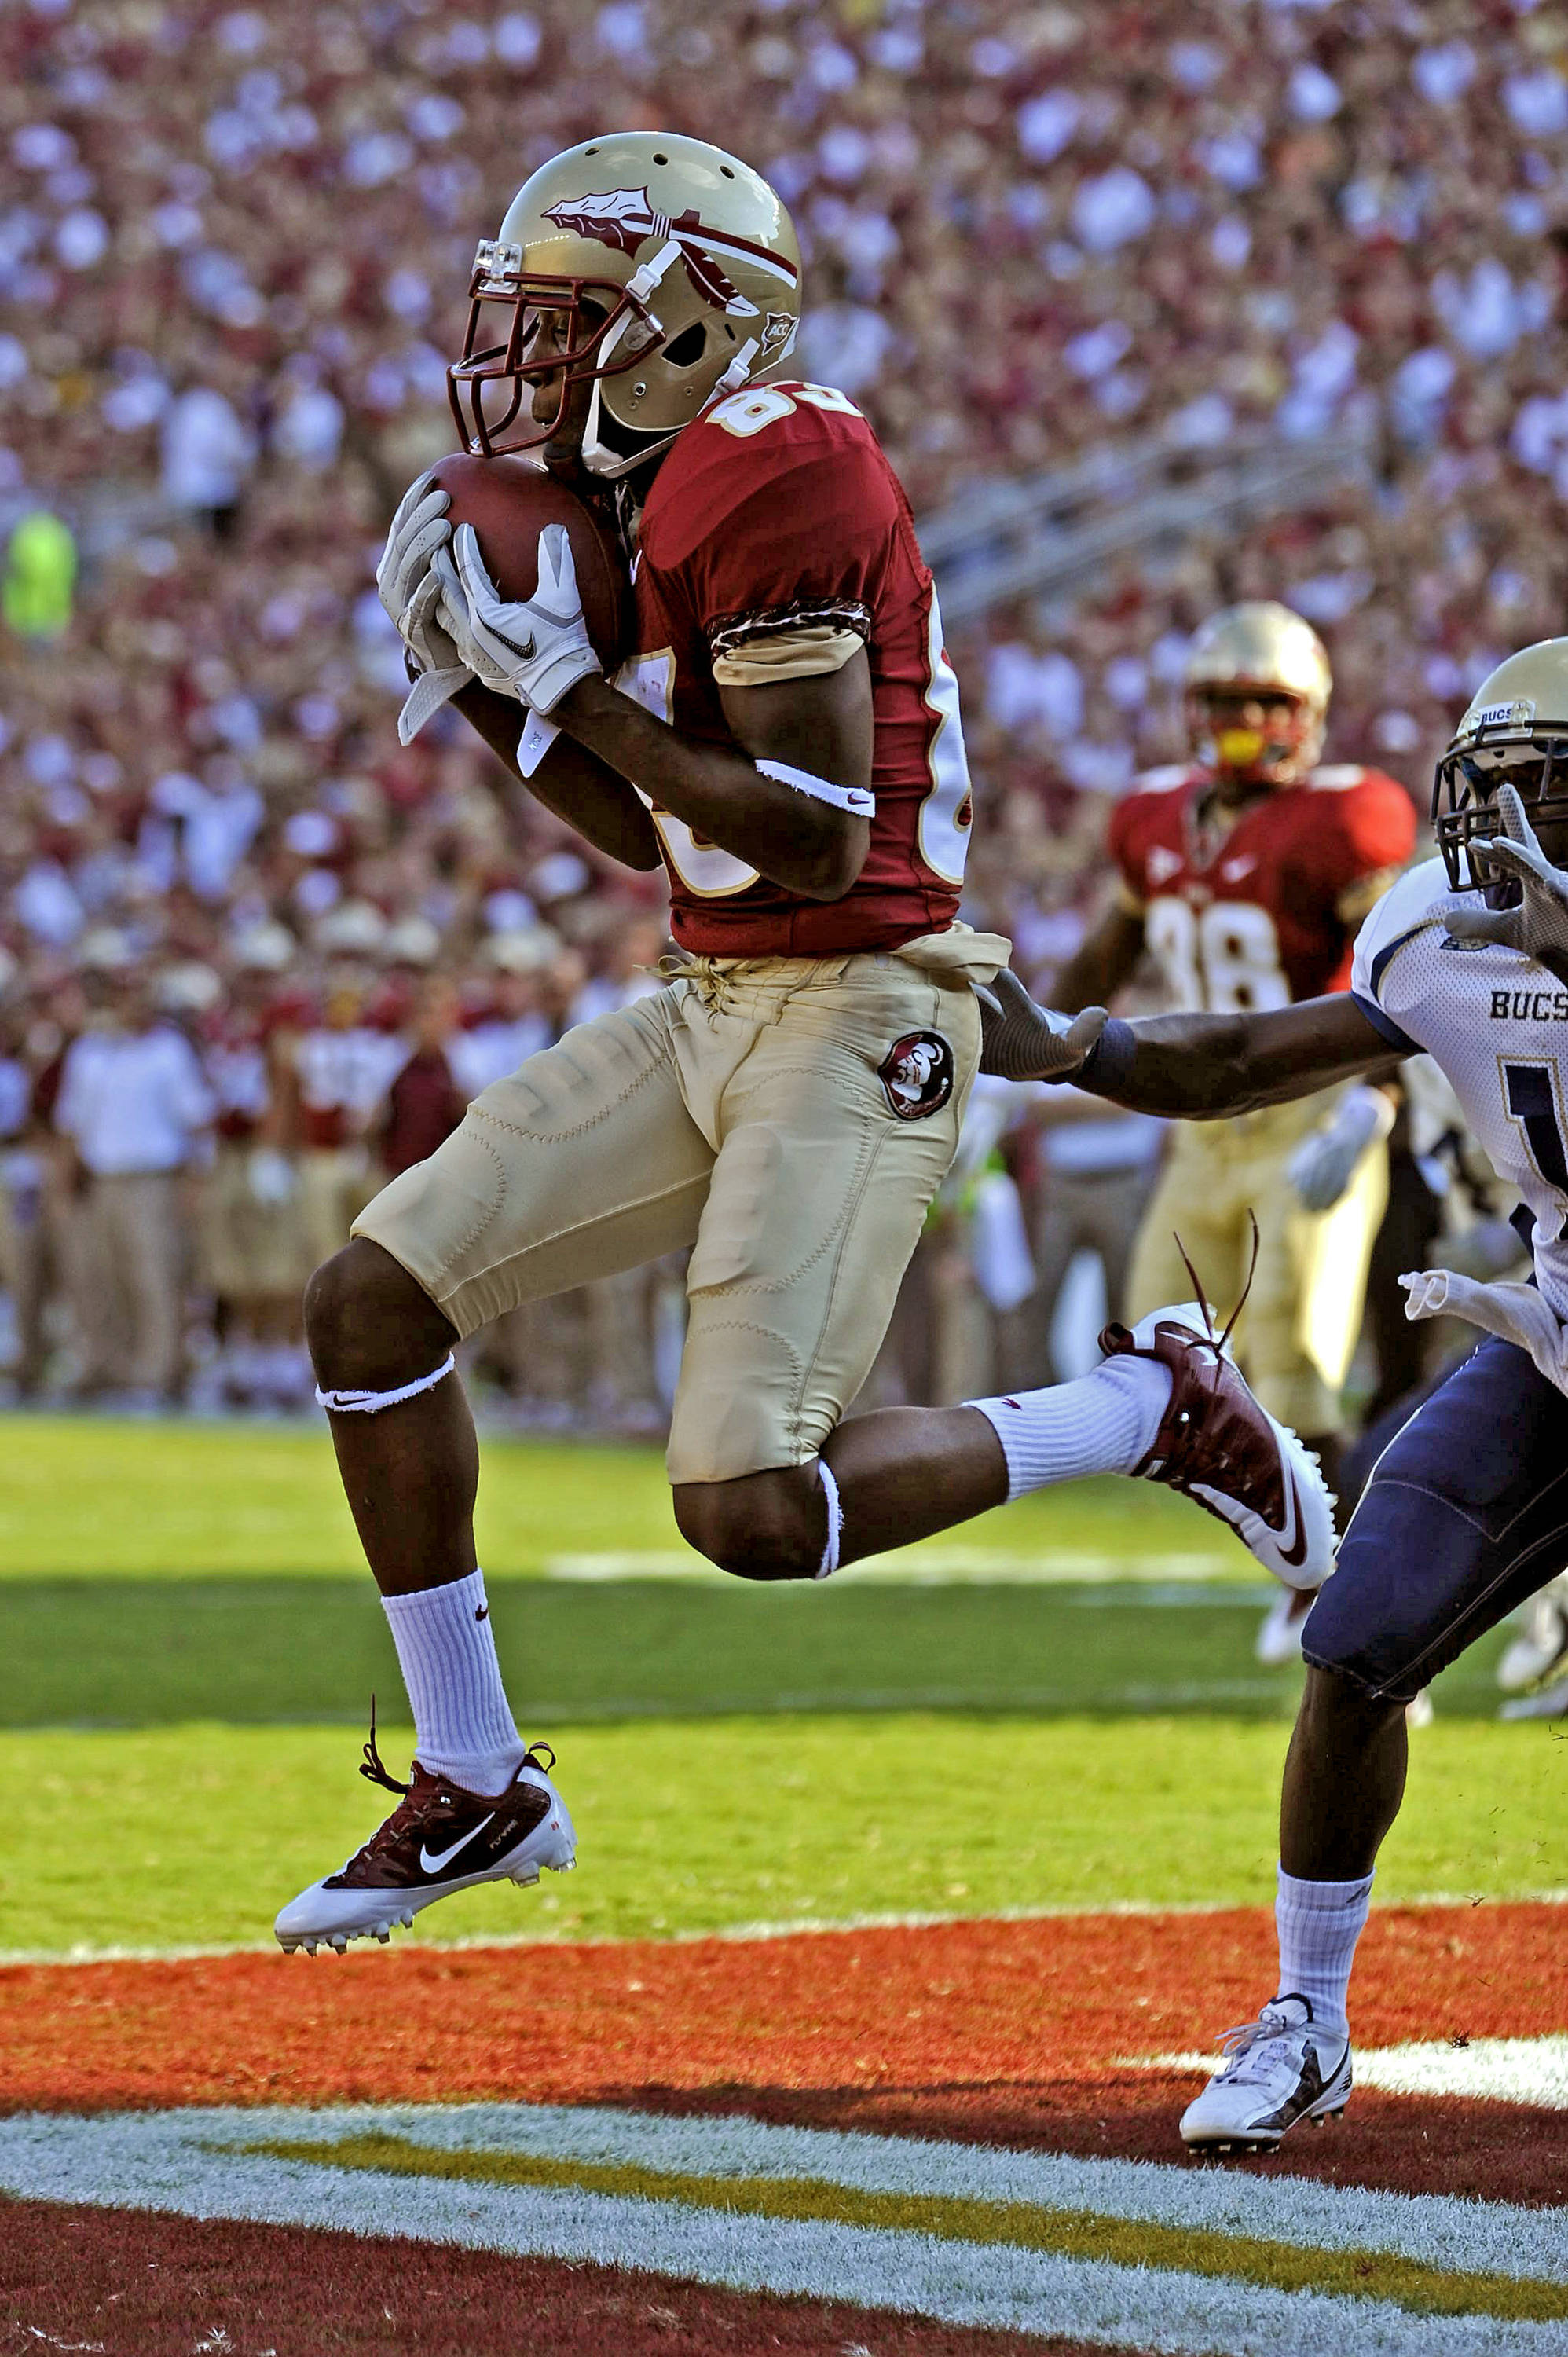 Bert Reed (83) catches a touchdown pass against Charleston Southern on September 10th.